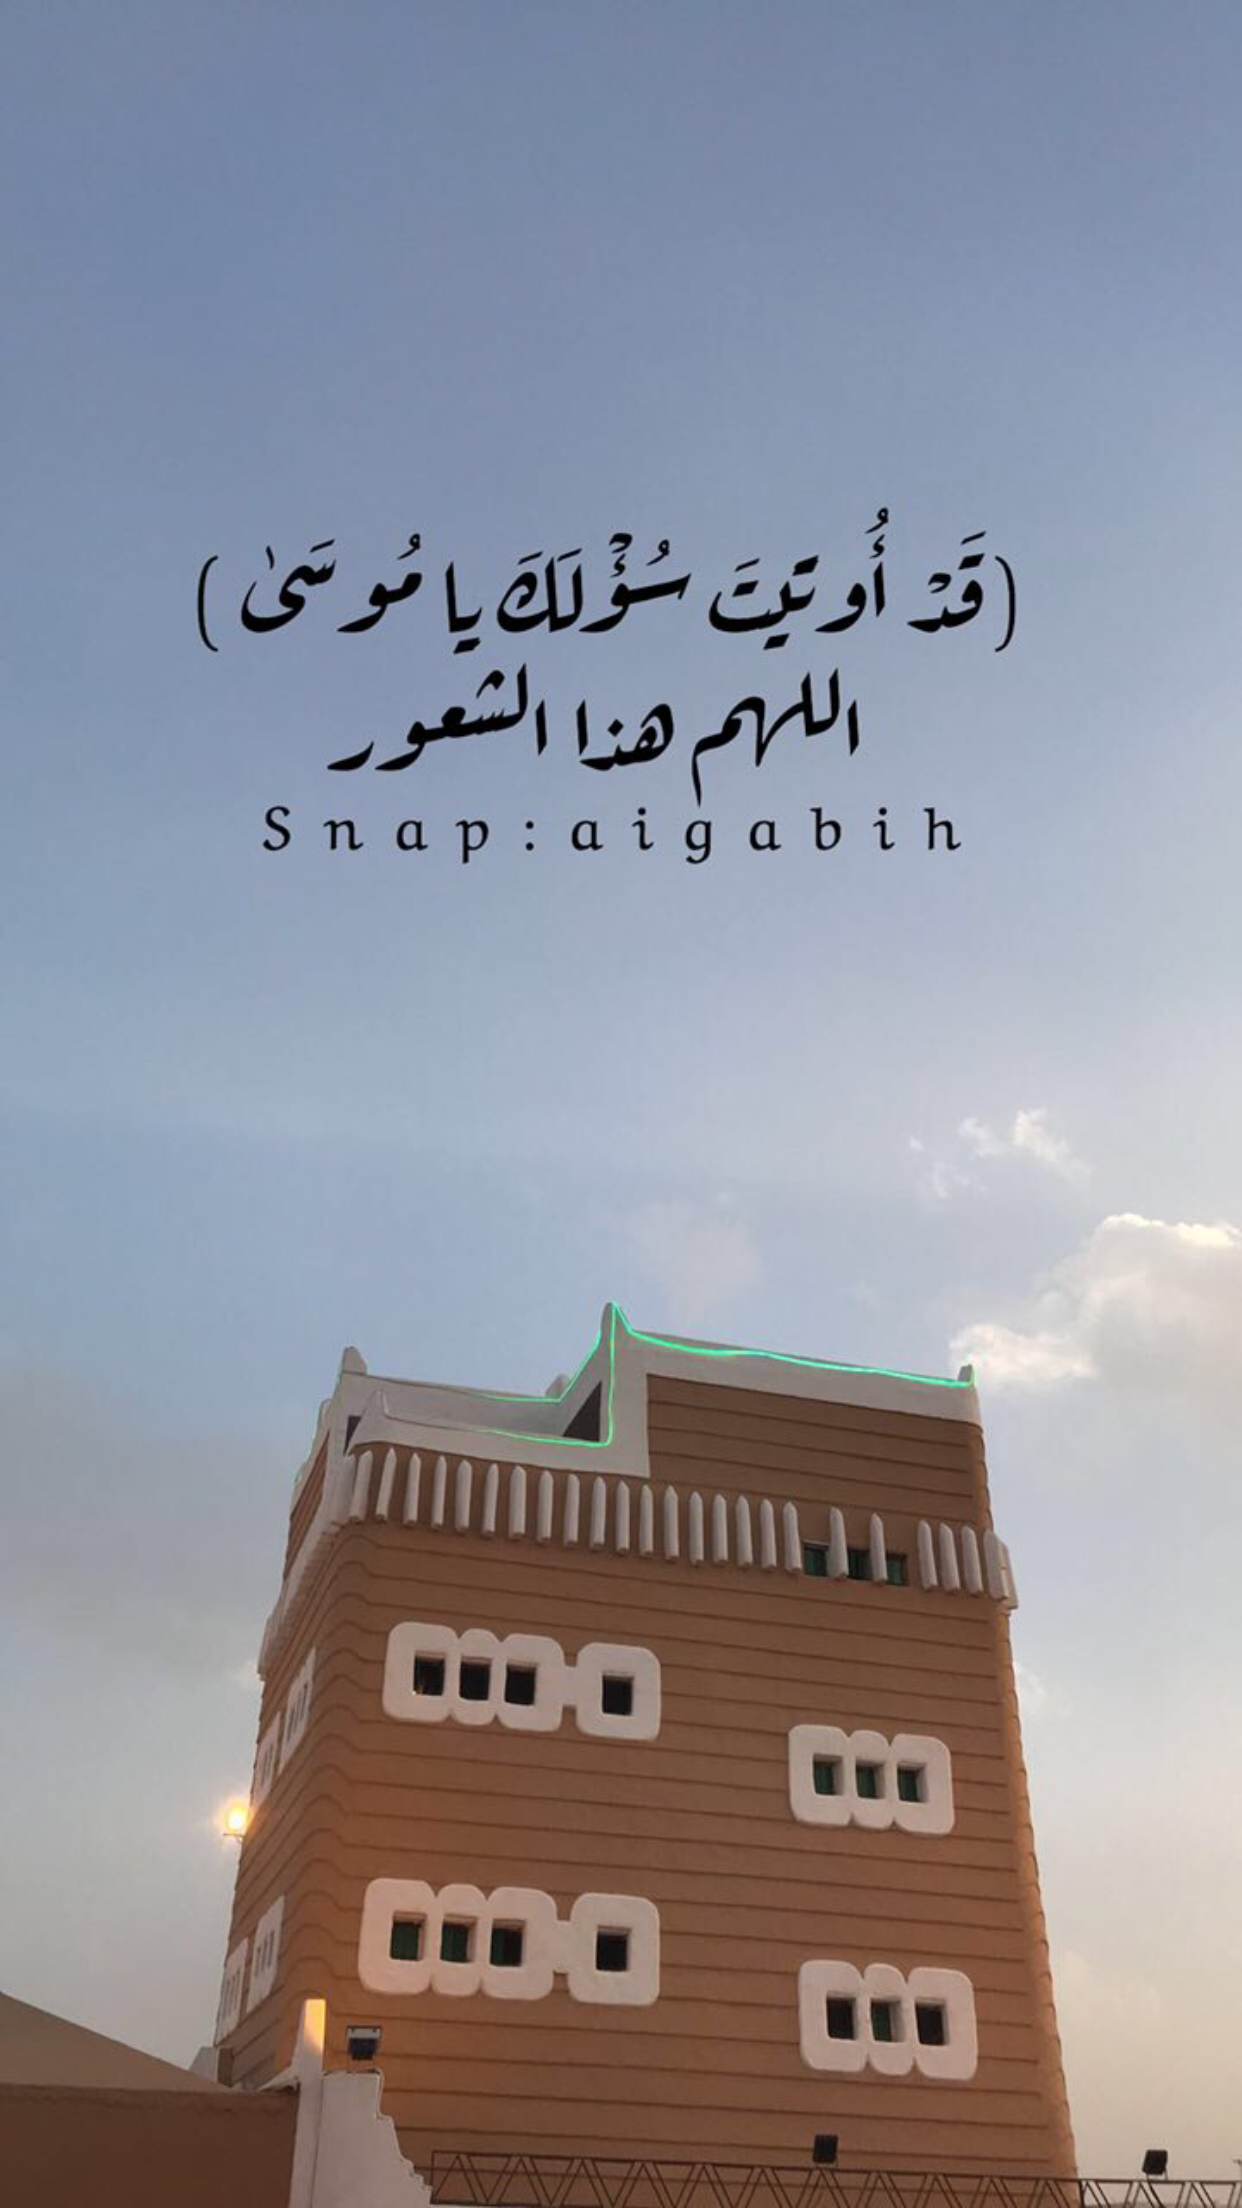 Pin By Yoooshtk On صور تحفيزيه Inspiring Quotes About Life Quran Quotes Islamic Pictures